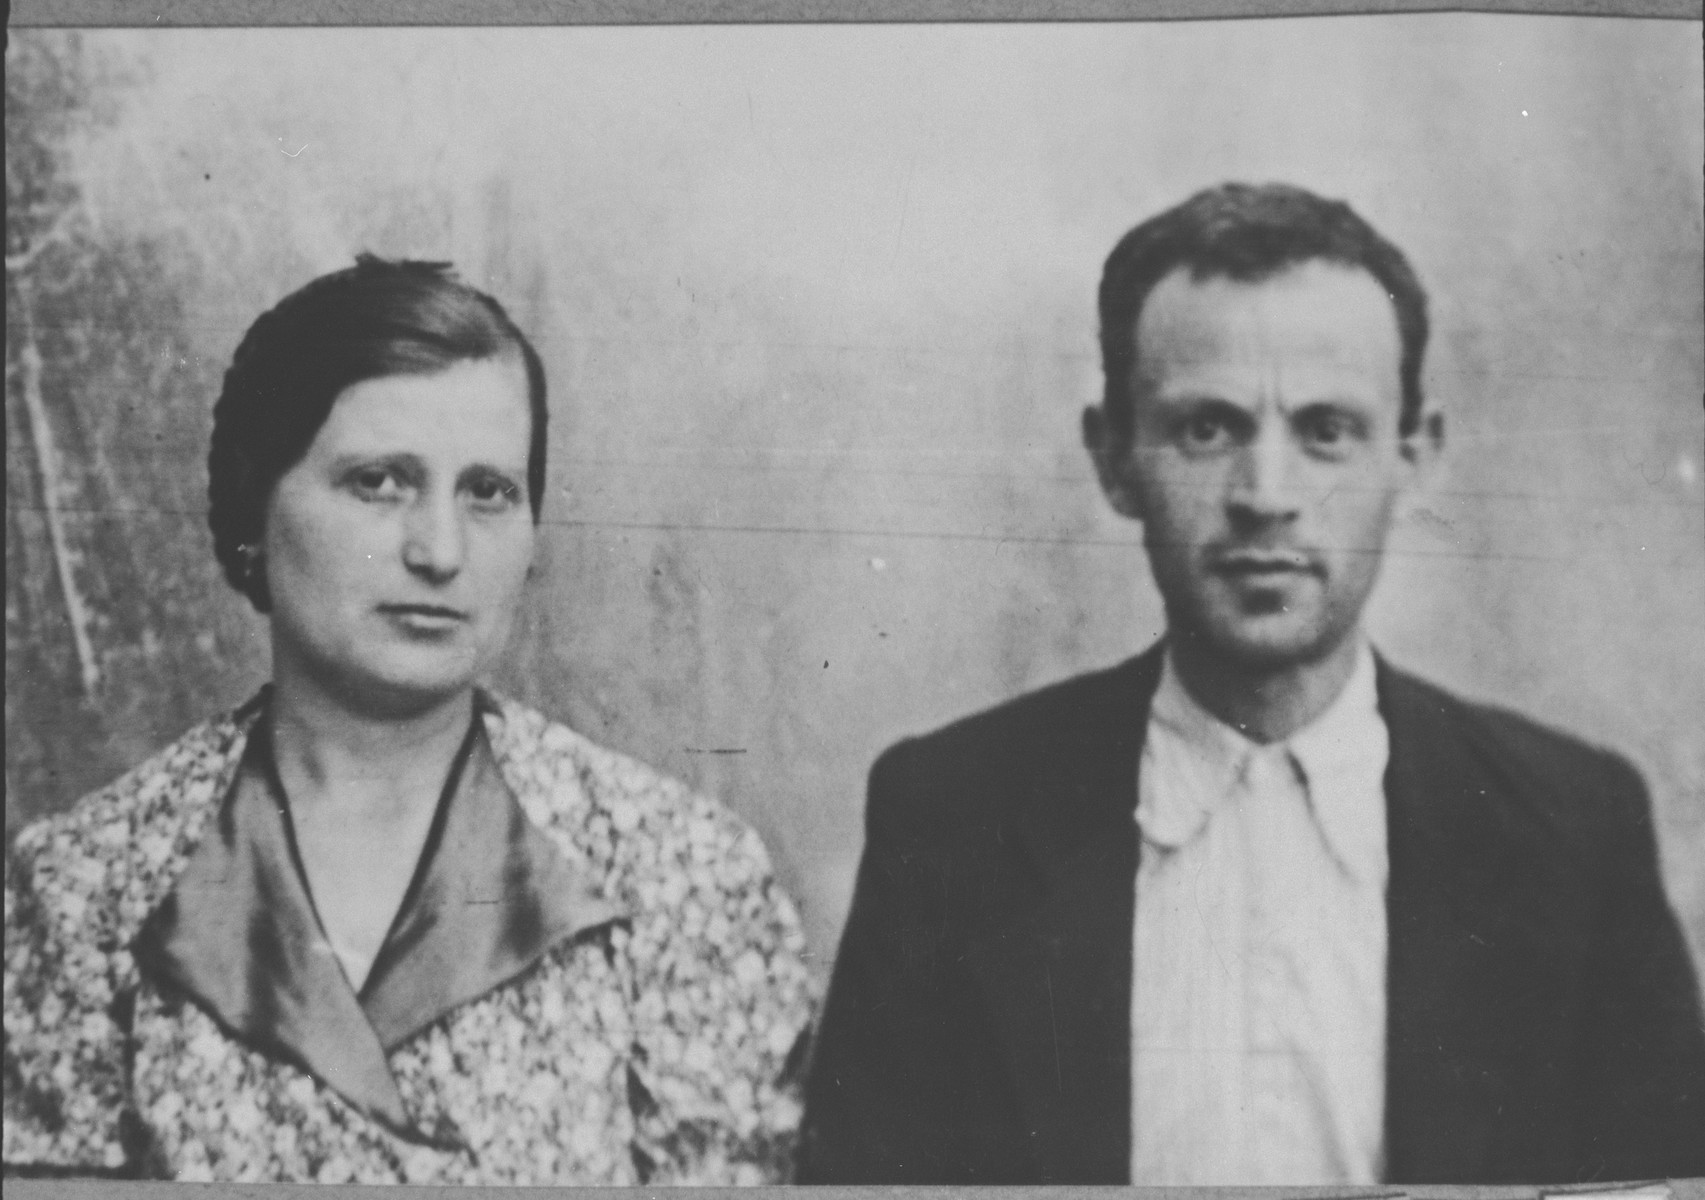 Portrait of Avram Ovadia and [his wife], Djana.  Avram was a rag dealer.  They lived at Asadbegova 22 in Bitola.